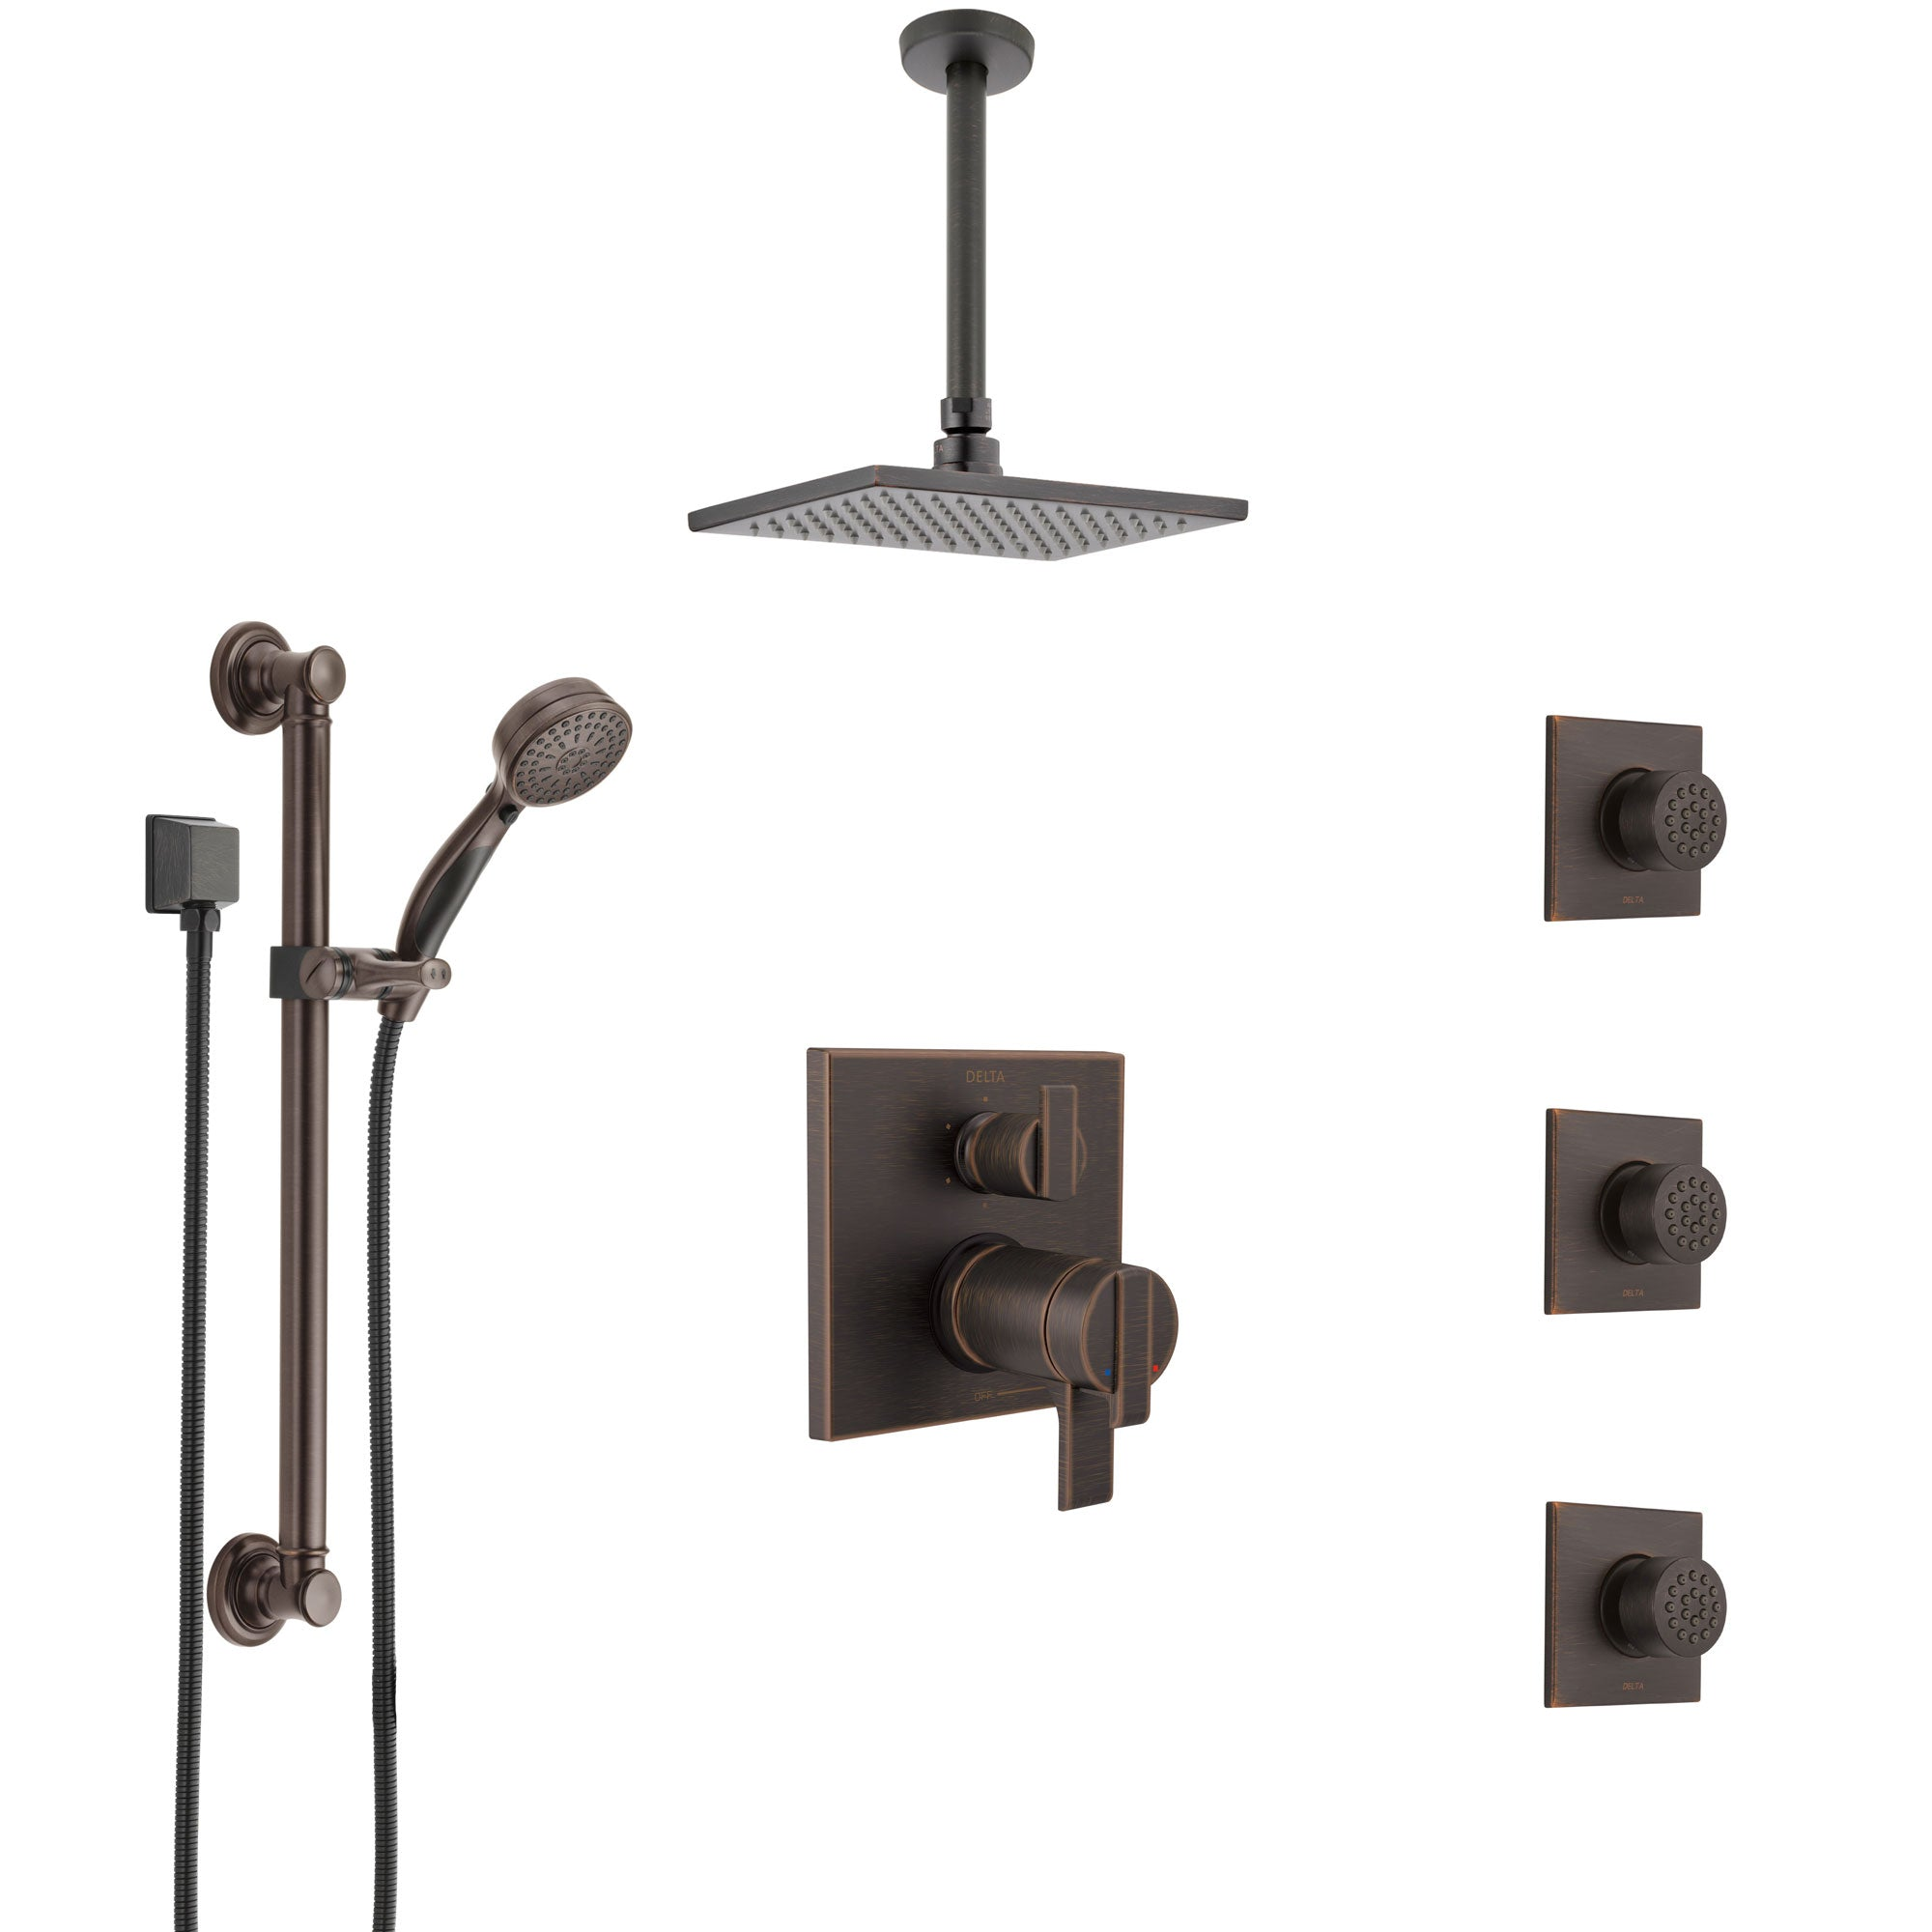 Delta Ara Venetian Bronze Dual Thermostatic Control Shower System, Ceiling Showerhead, 3 Body Jets, Grab Bar Hand Spray SS27T967RB2